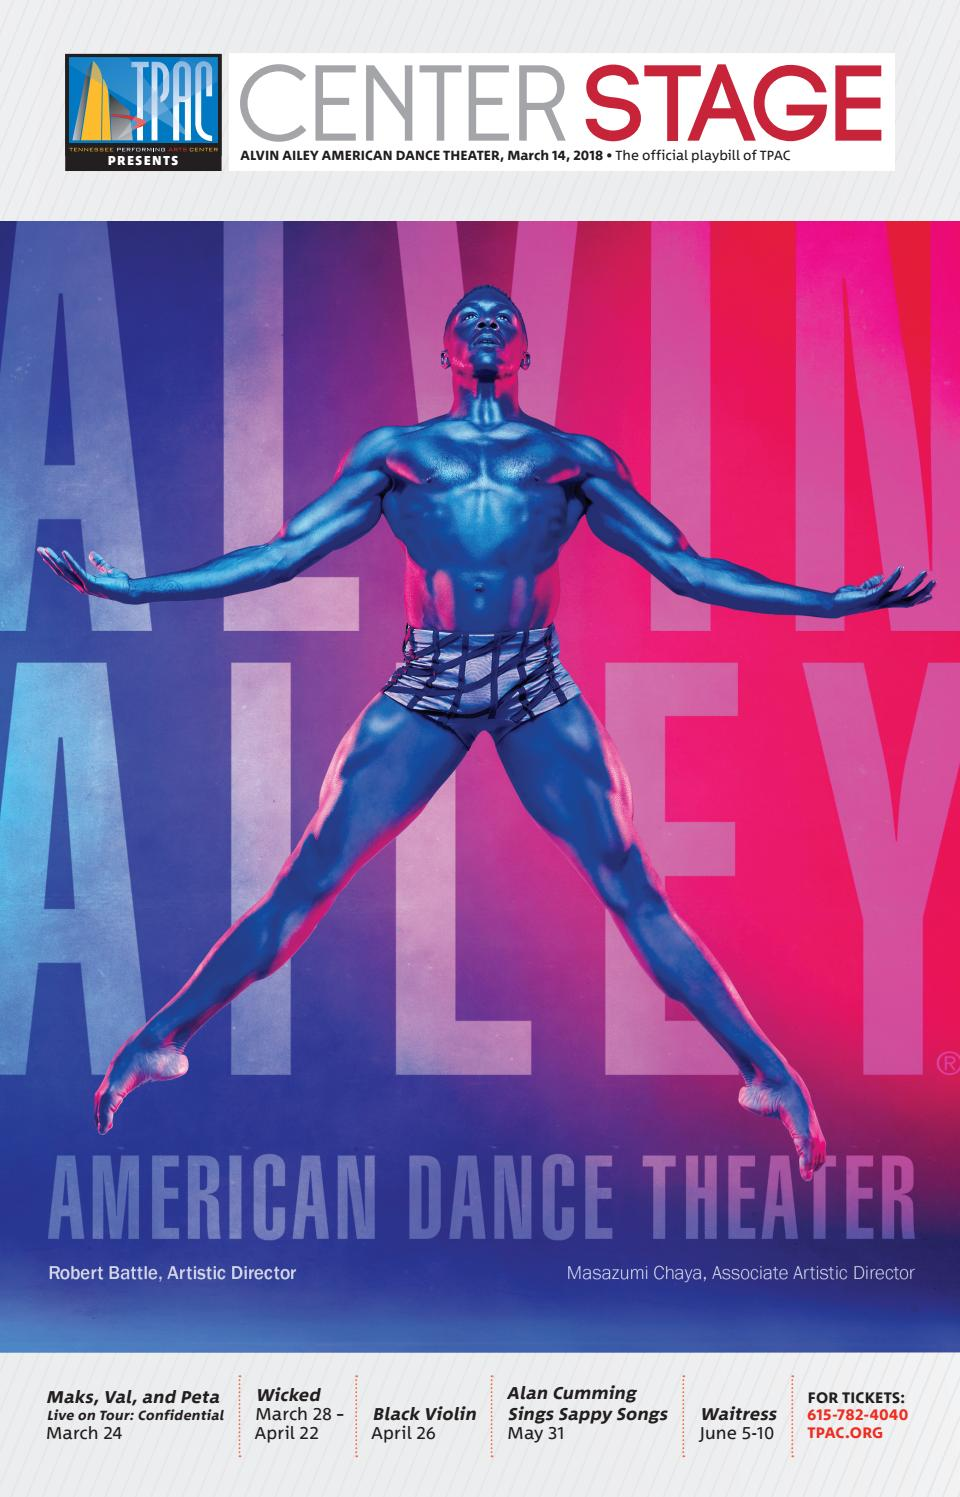 Alvin Purple Tv Series Download tpac alvin ailey american dance theaterperforming arts